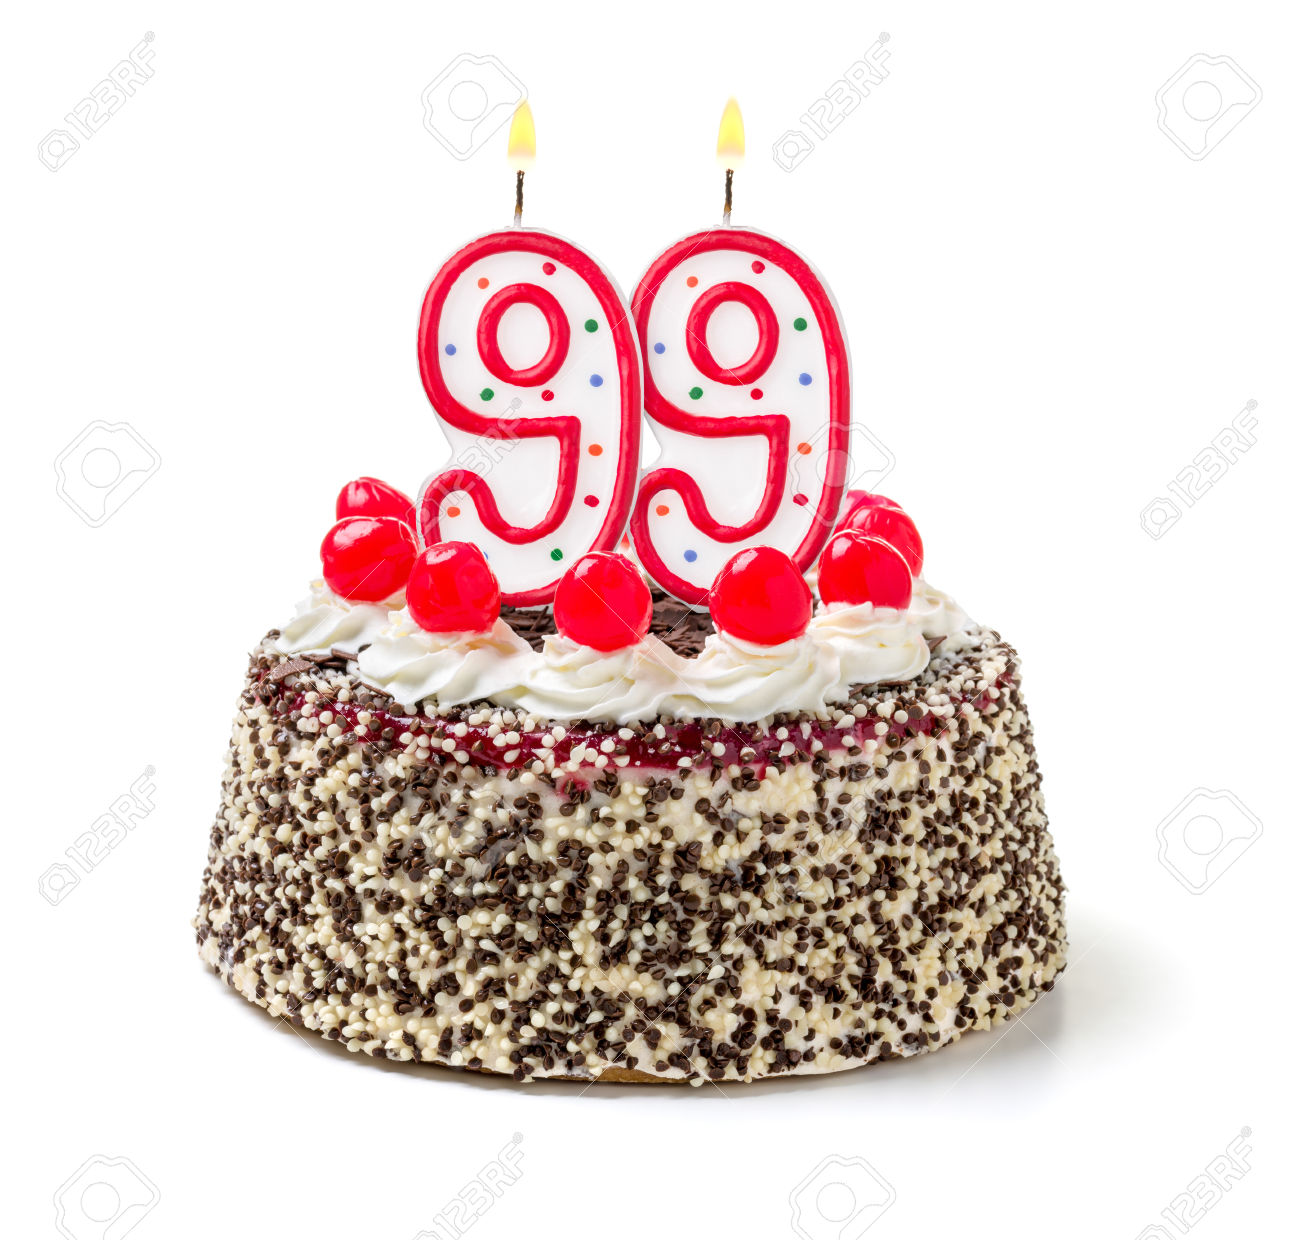 Birthday cake with burning candle number 99